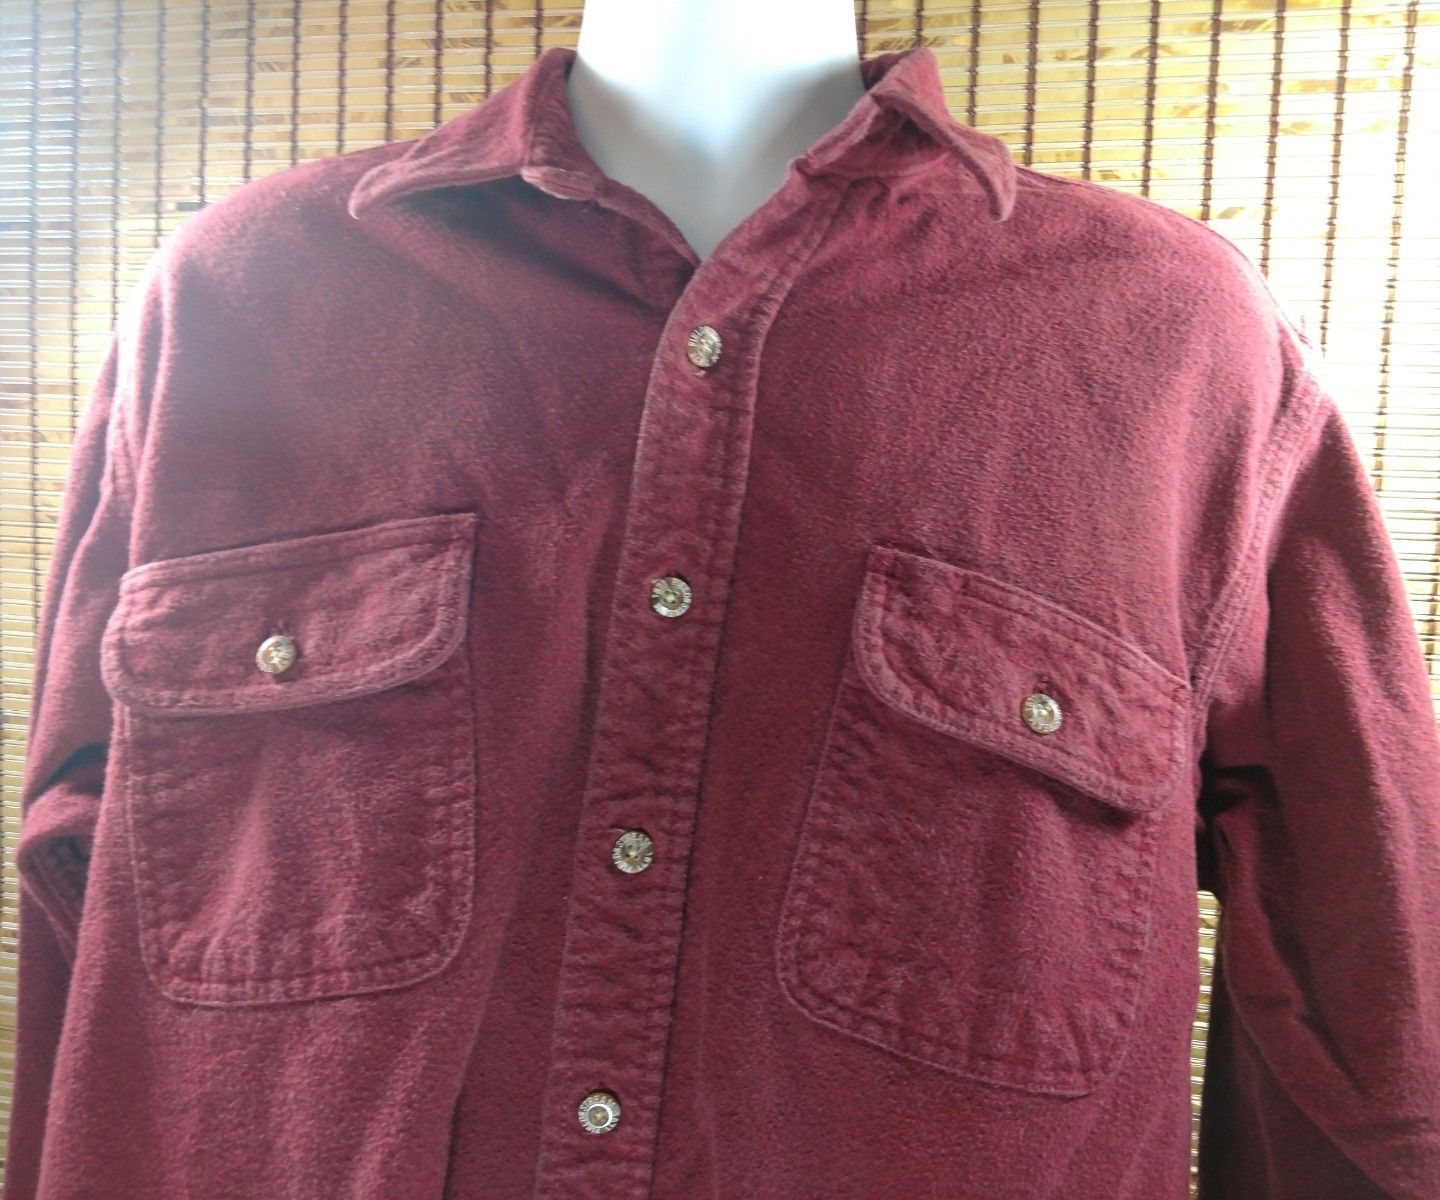 Field & Stream Mens Thick Cotton Shirt Full Button Front Size Large Red Outdoors